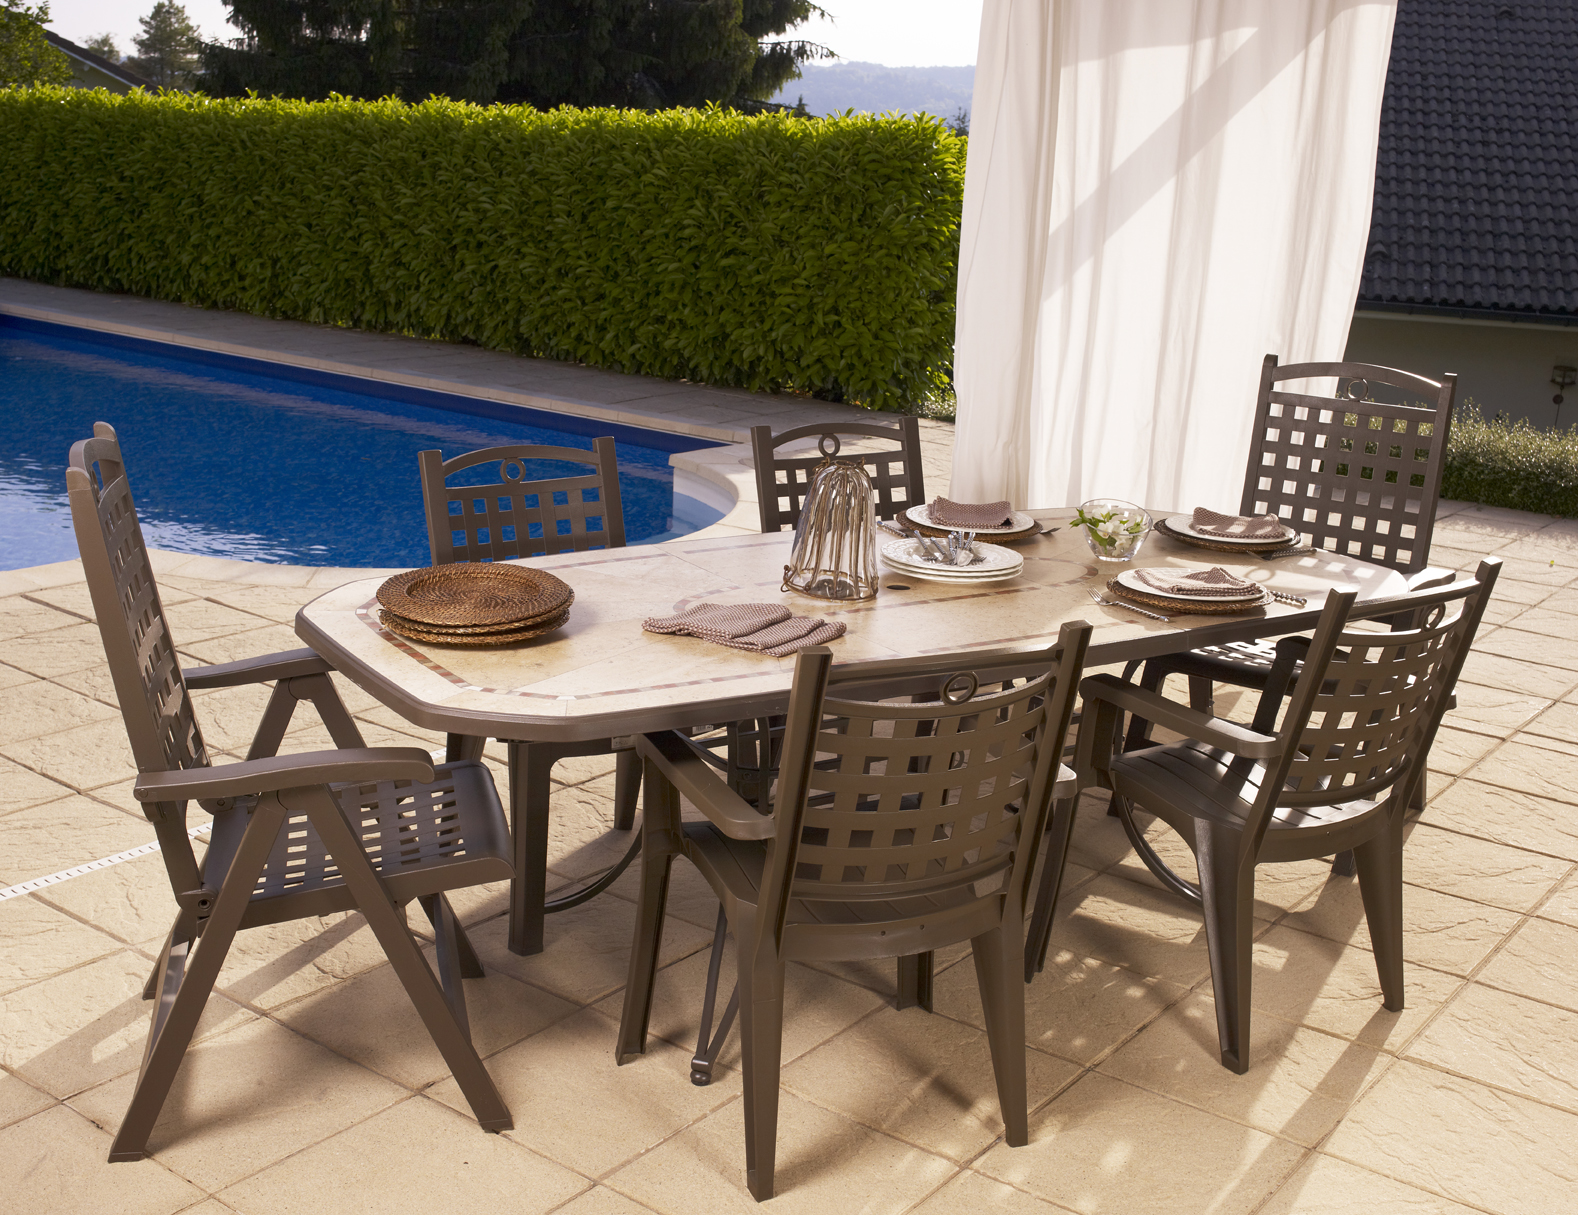 Grosfillex salon complet table amalfi bronze 4 fauteuils bo - Salon jardin grosfillex ...